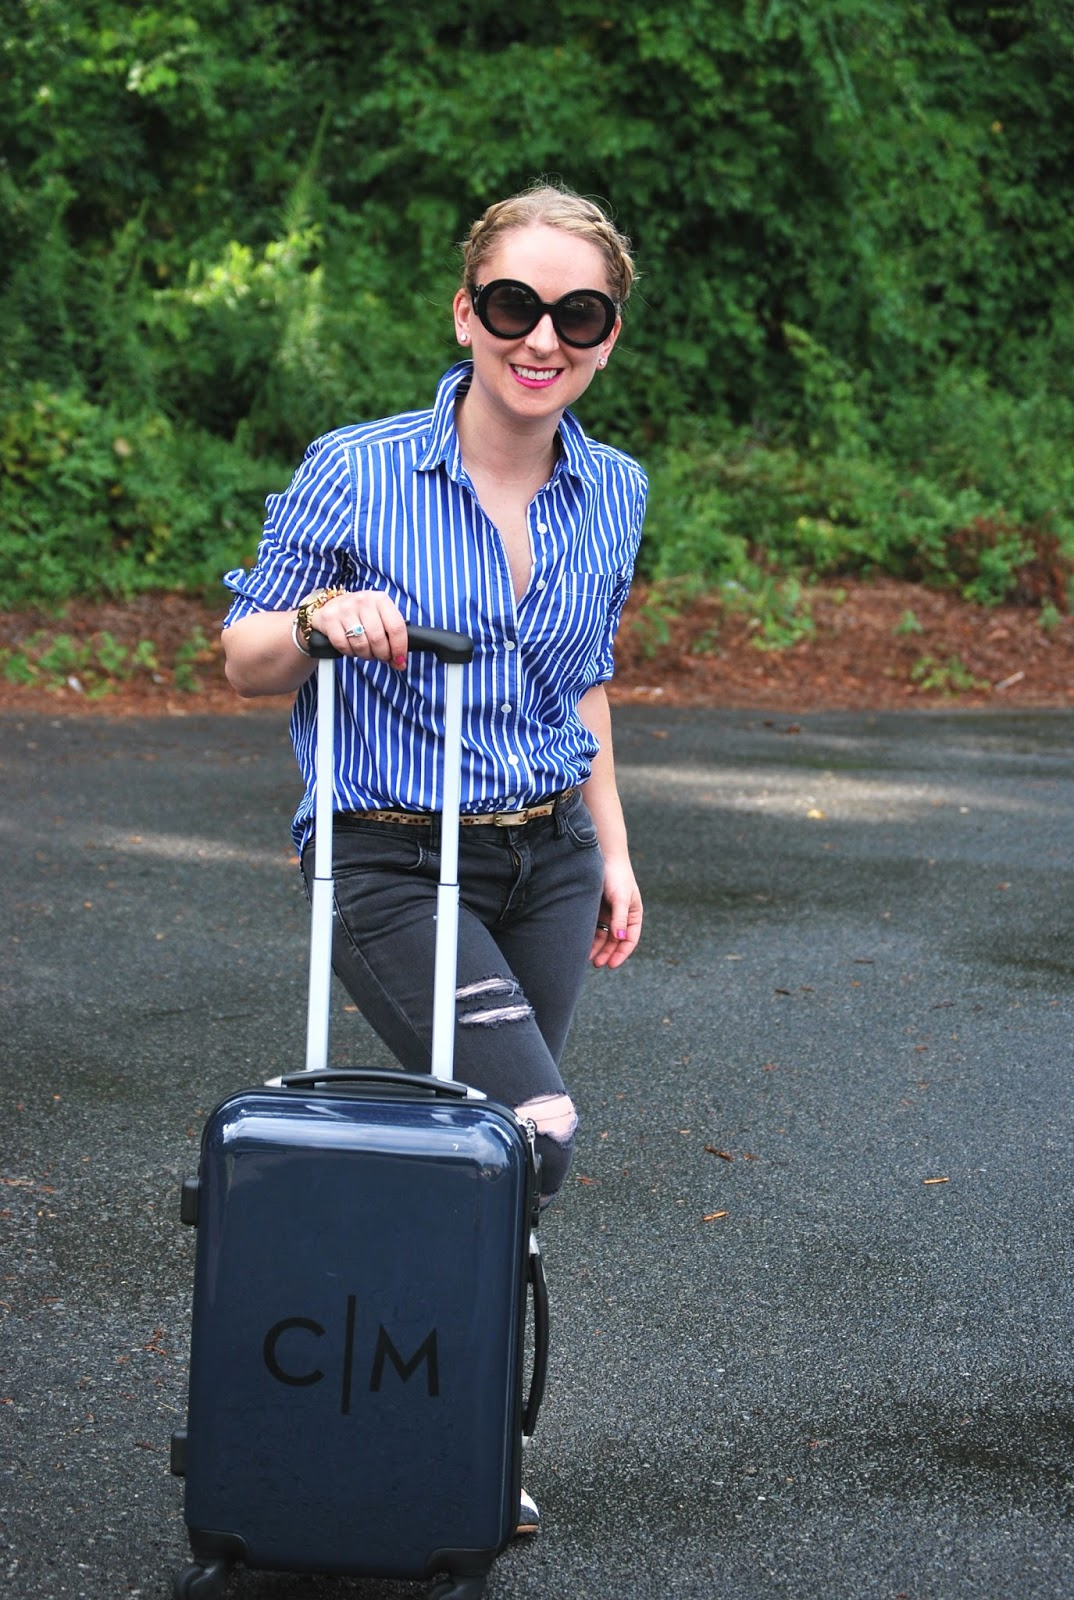 Vacation Travel Clubs - How Much Do They Cost And What Are The Benefits of Membership?